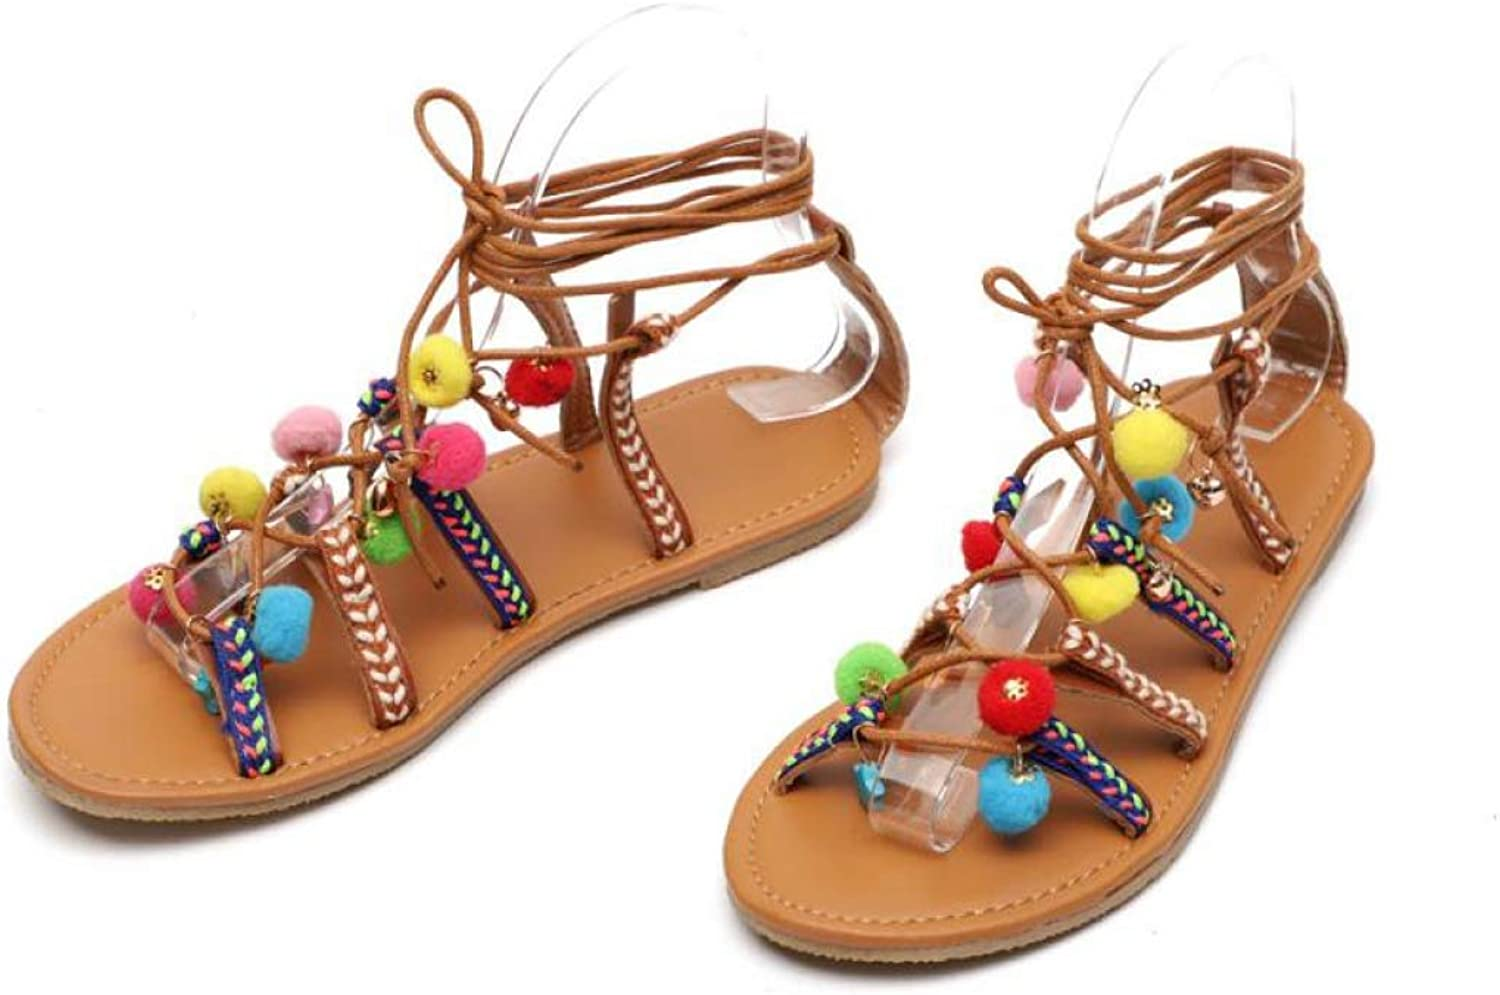 Hoxekle Woman's Bohoia Flats colorful Pom-Pom Sandals Strappy Ankle Lace Up Open Toe Summer Beach Casual shoes